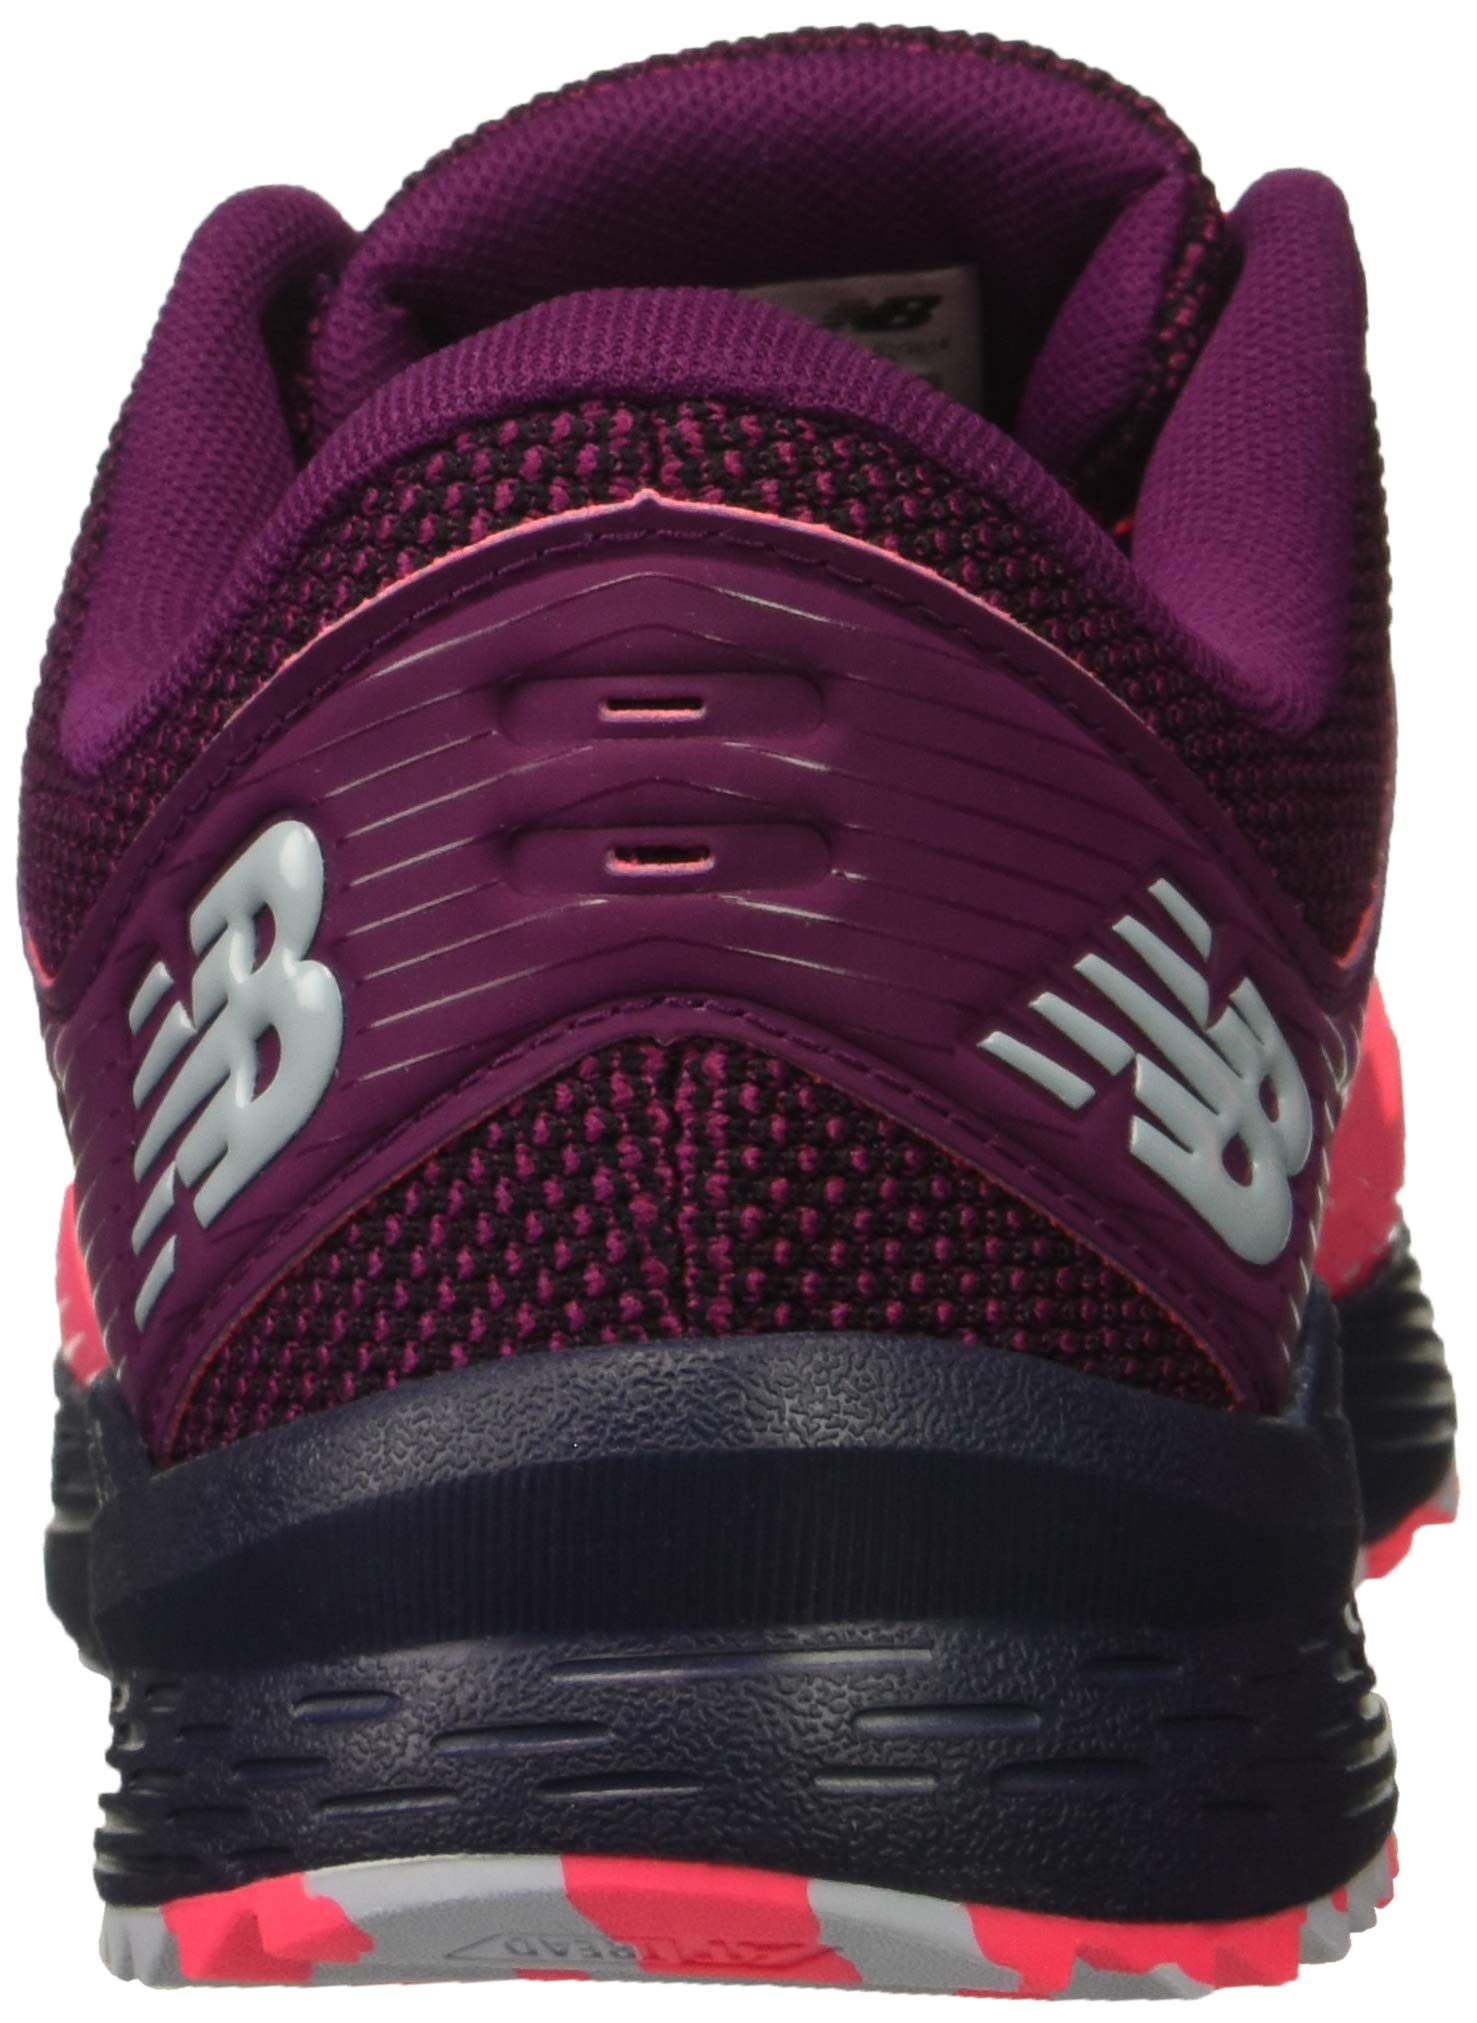 New Balance Women's Nitrel V2 FuelCore Trail Running Shoe Pink zing/Claret/Pigment 5 B US by New Balance (Image #2)